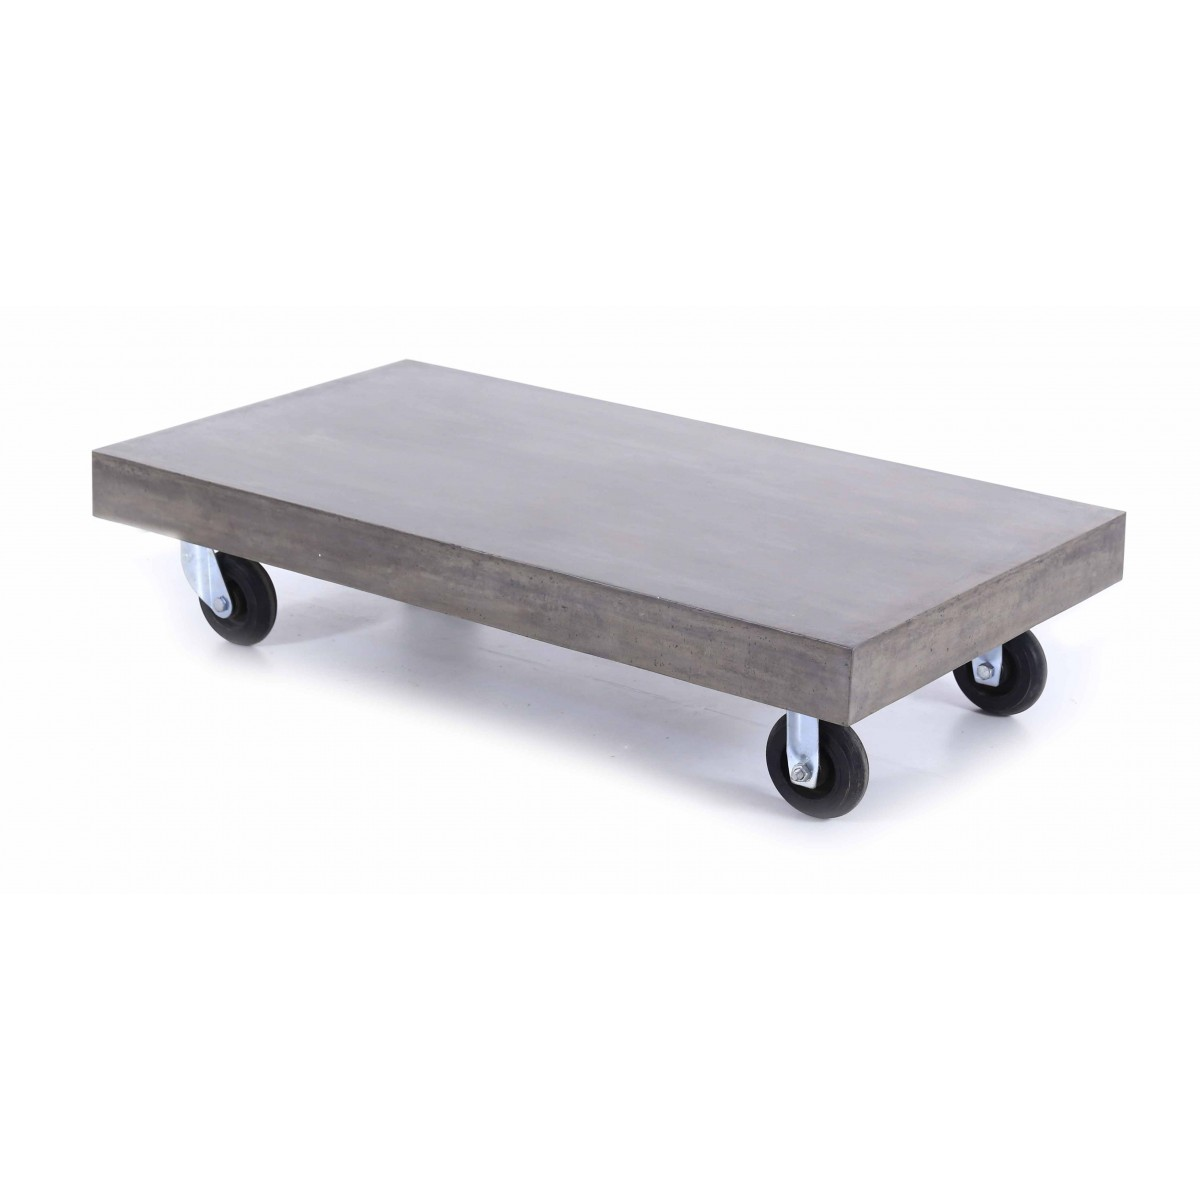 Table basse design b ton roulettes mooviin - Table basse avec roulette ...